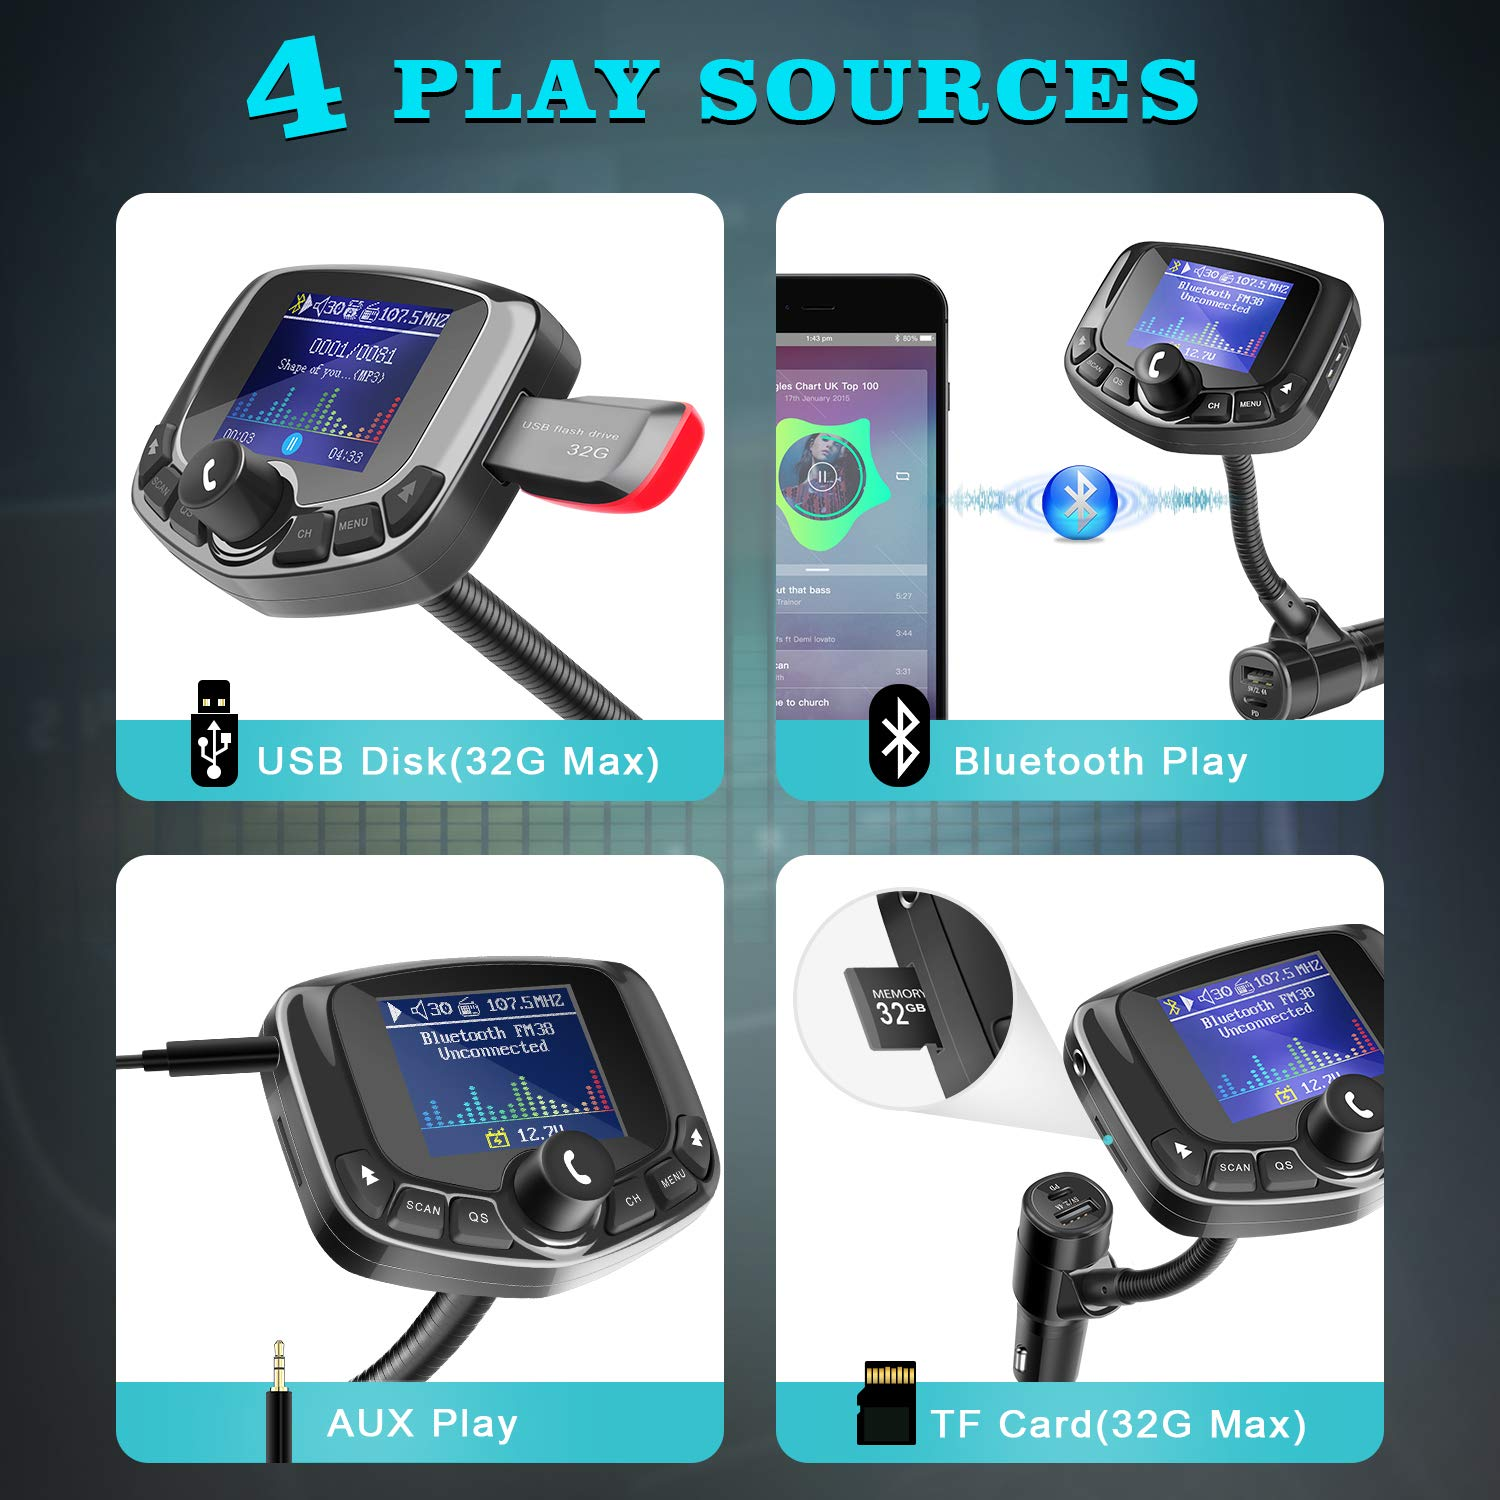 4 Music Play Hands-Free Calls ZEEPORTE Bluetooth FM Transmitter for Car TF Card 1.8 Color Screen Wireless Bluetooth FM Radio Adapter Type-C PD 27W Quick Charger with 5 EQ Mode AUX 3 USB Ports